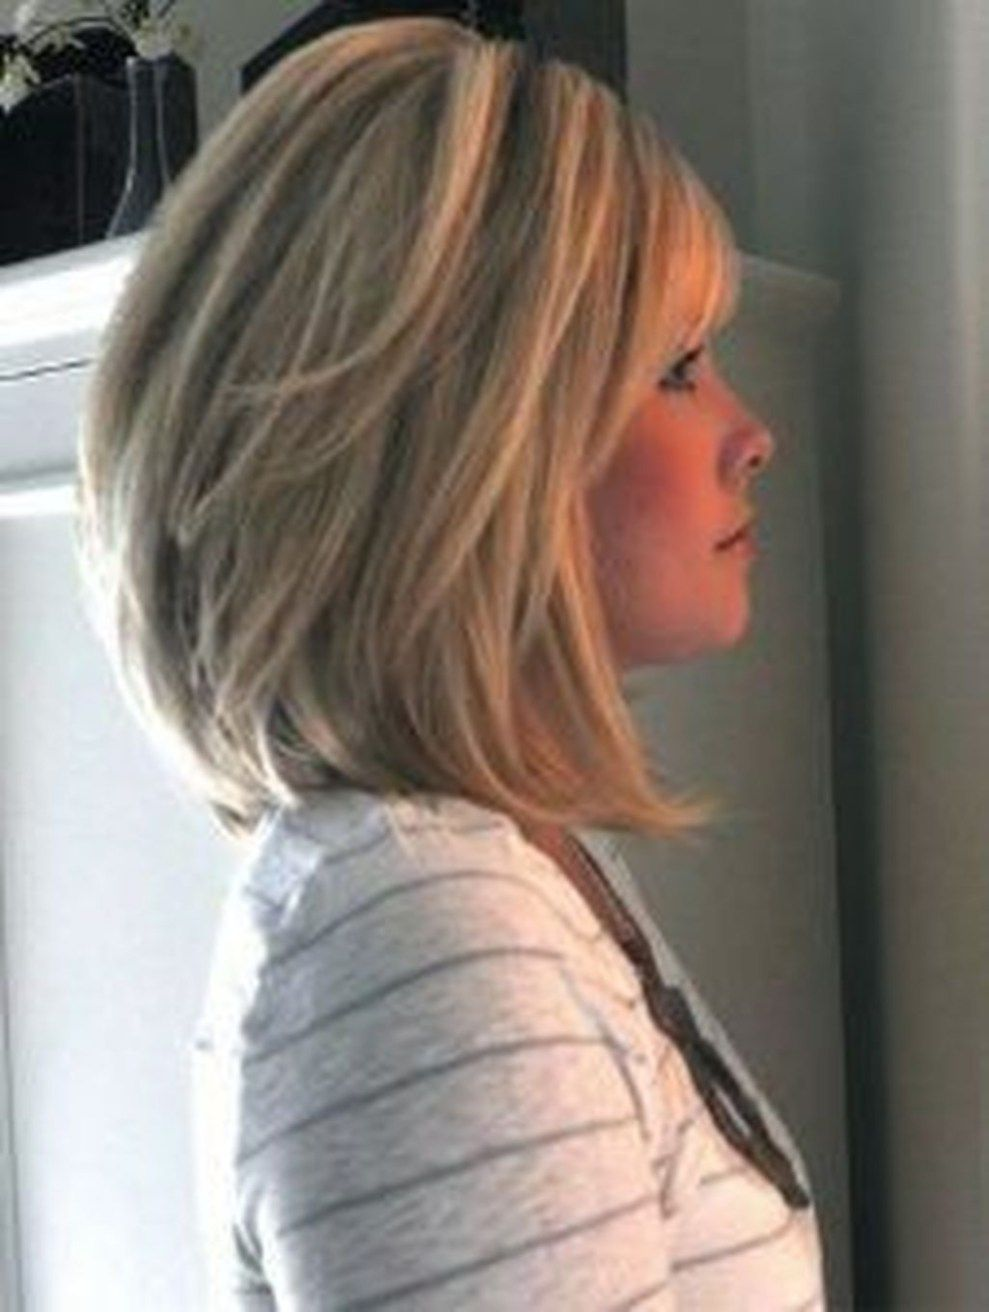 Cool Shoulder Length Hairstyles For Women Over 50 06 Wear4trend Hair Styles Bob Hairstyles For Thick Hot Hair Styles